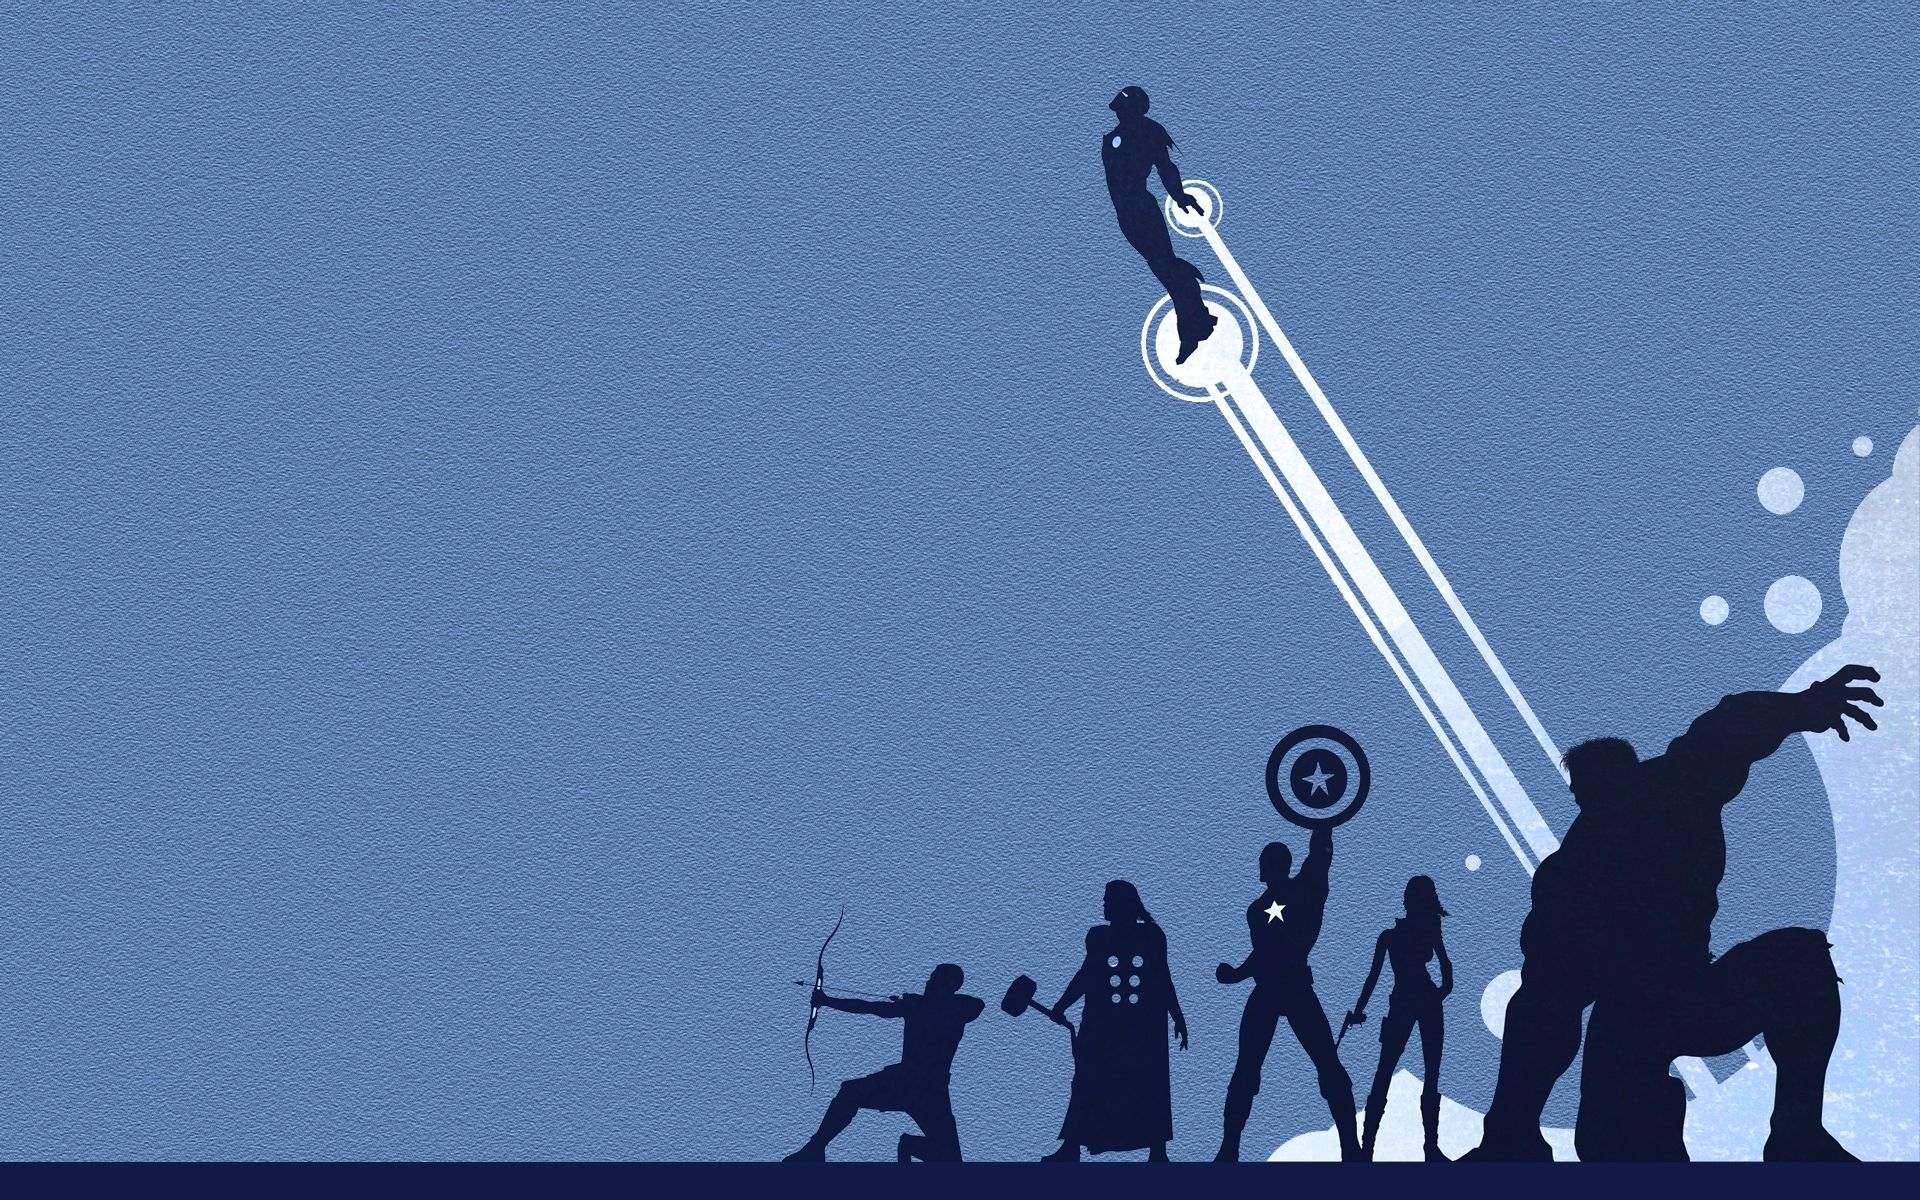 Minimalist Avengers X Wallpaper Marvel Images Superhero Wallpaper Dc Comics Wallpaper